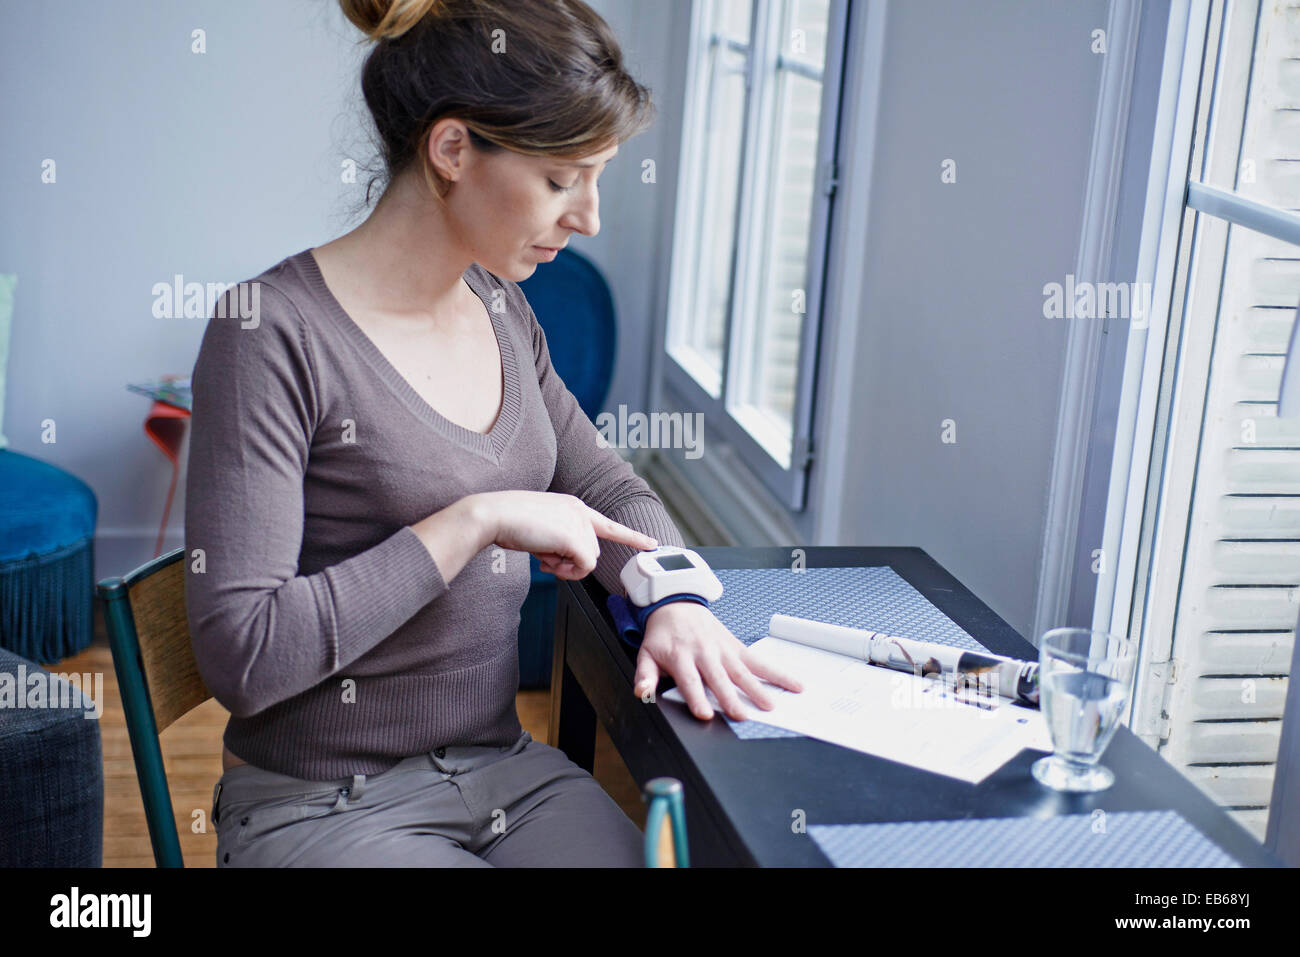 BLOOD PRESSURE, WOMAN - Stock Image